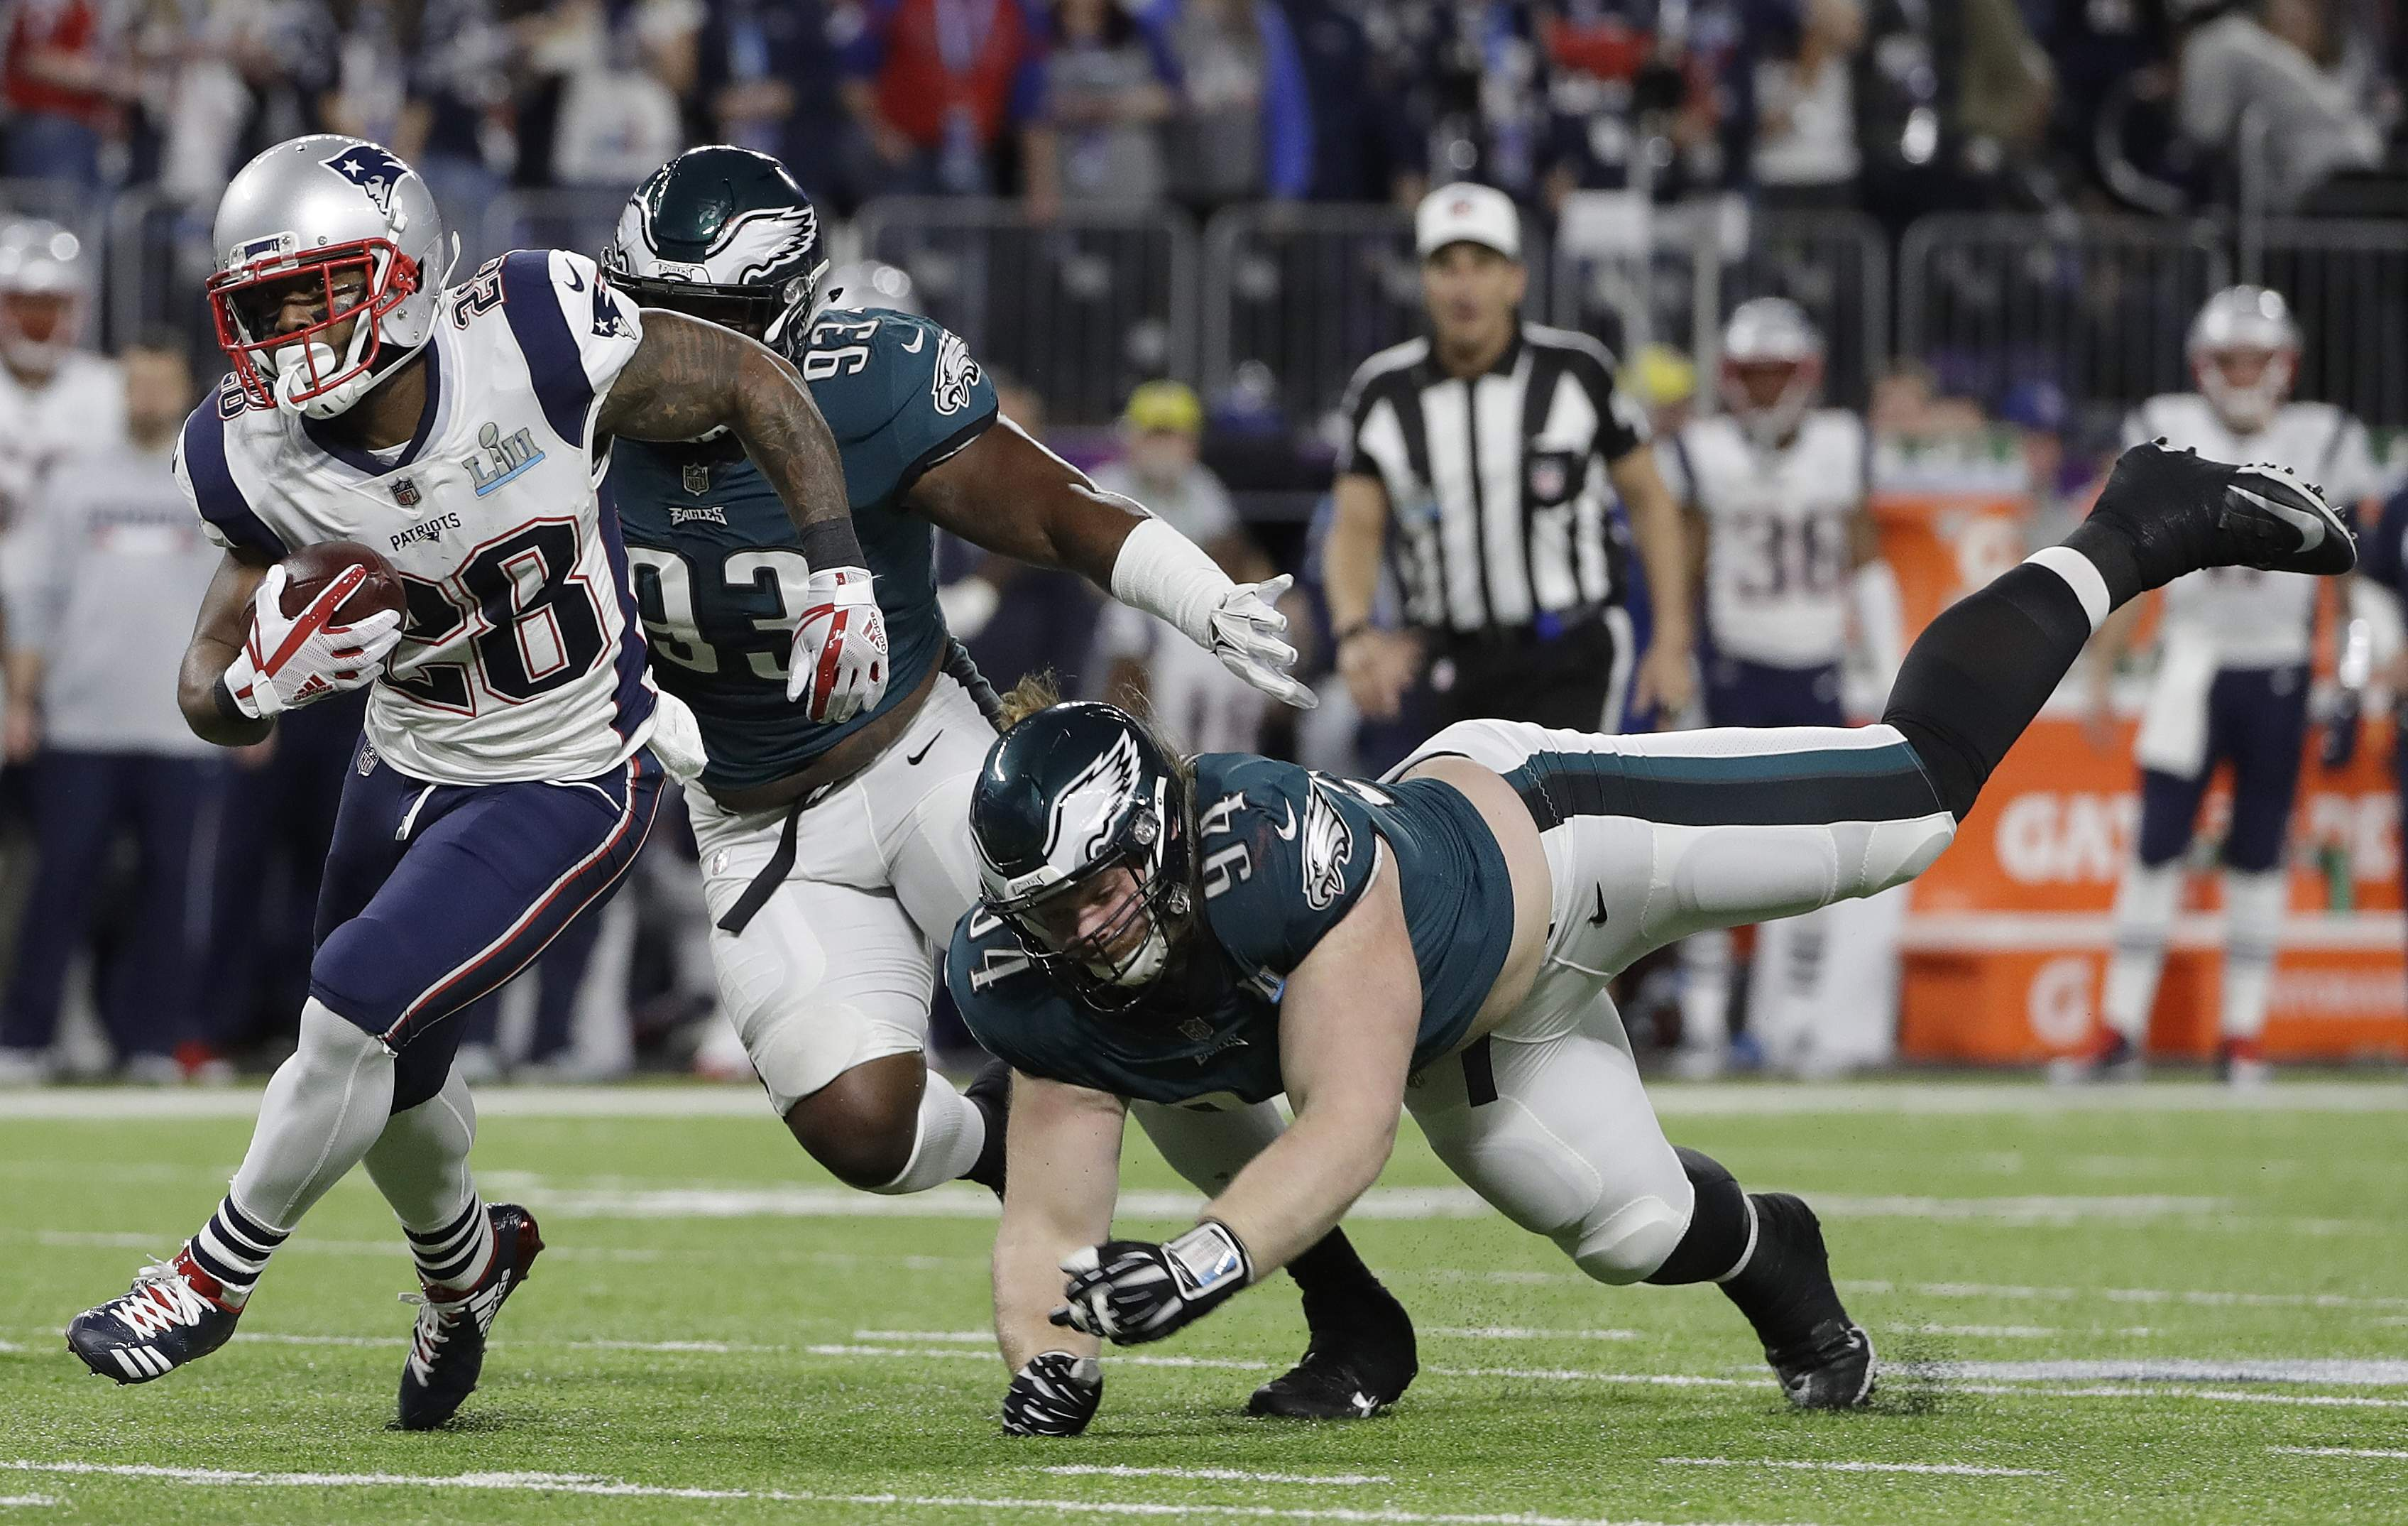 New England Patriots' James White, left, runs during the first half of the NFL Super Bowl 52 football game against the Philadelphia Eagles Sunday, Feb. 4, 2018, in Minneapolis. (AP Photo/Matt Slocum)